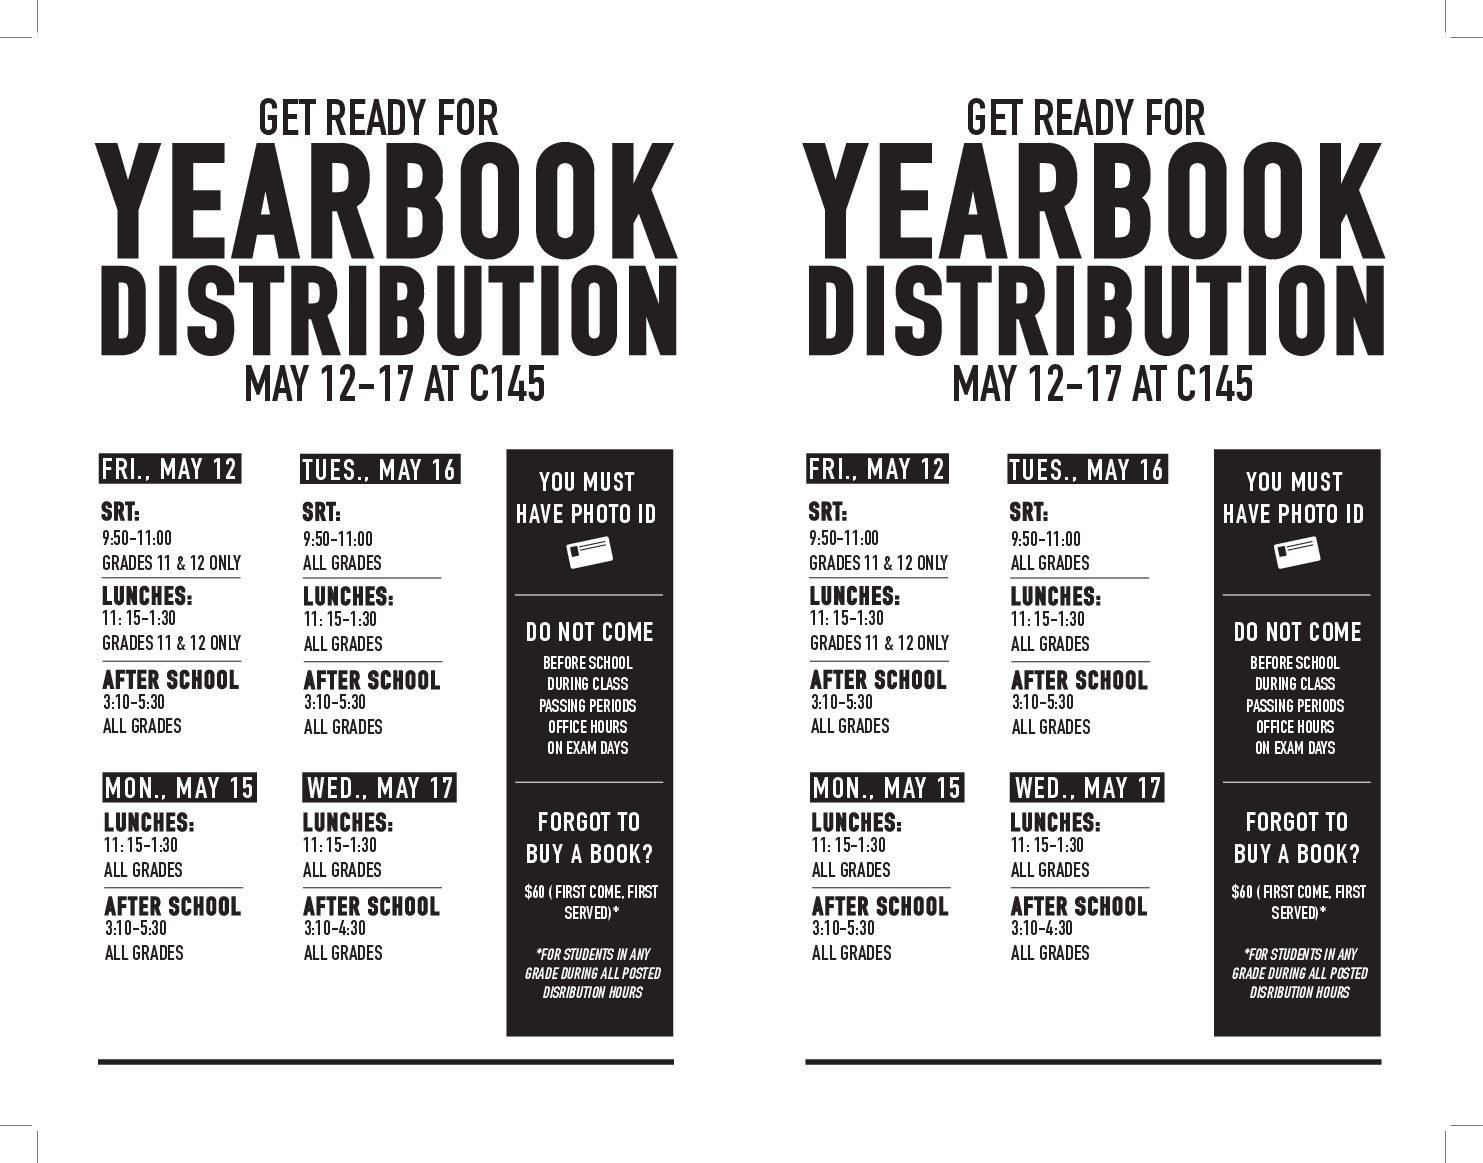 The distribution schedule provided by Yearbook staff.